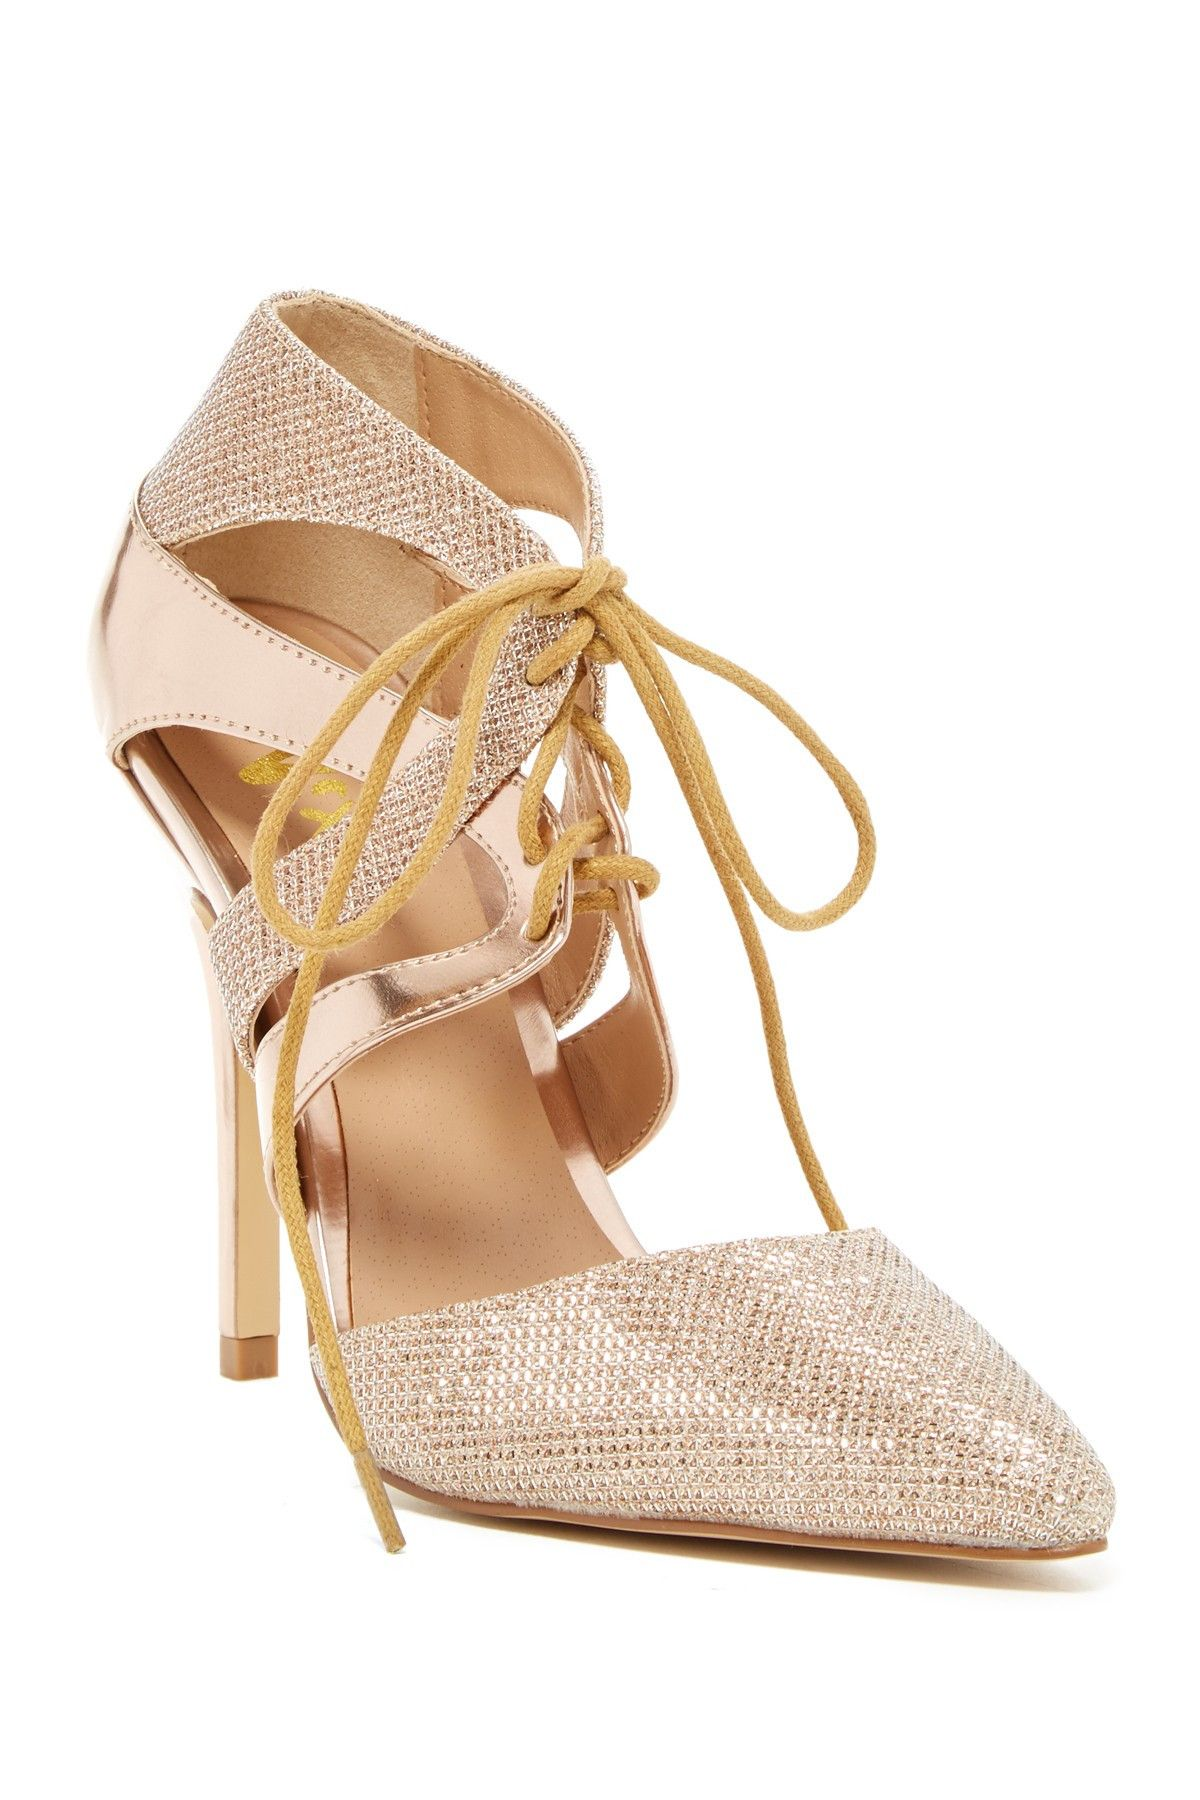 73daec3c38e9c Adding these nude + gold lace-up pumps to our shoe collection ...